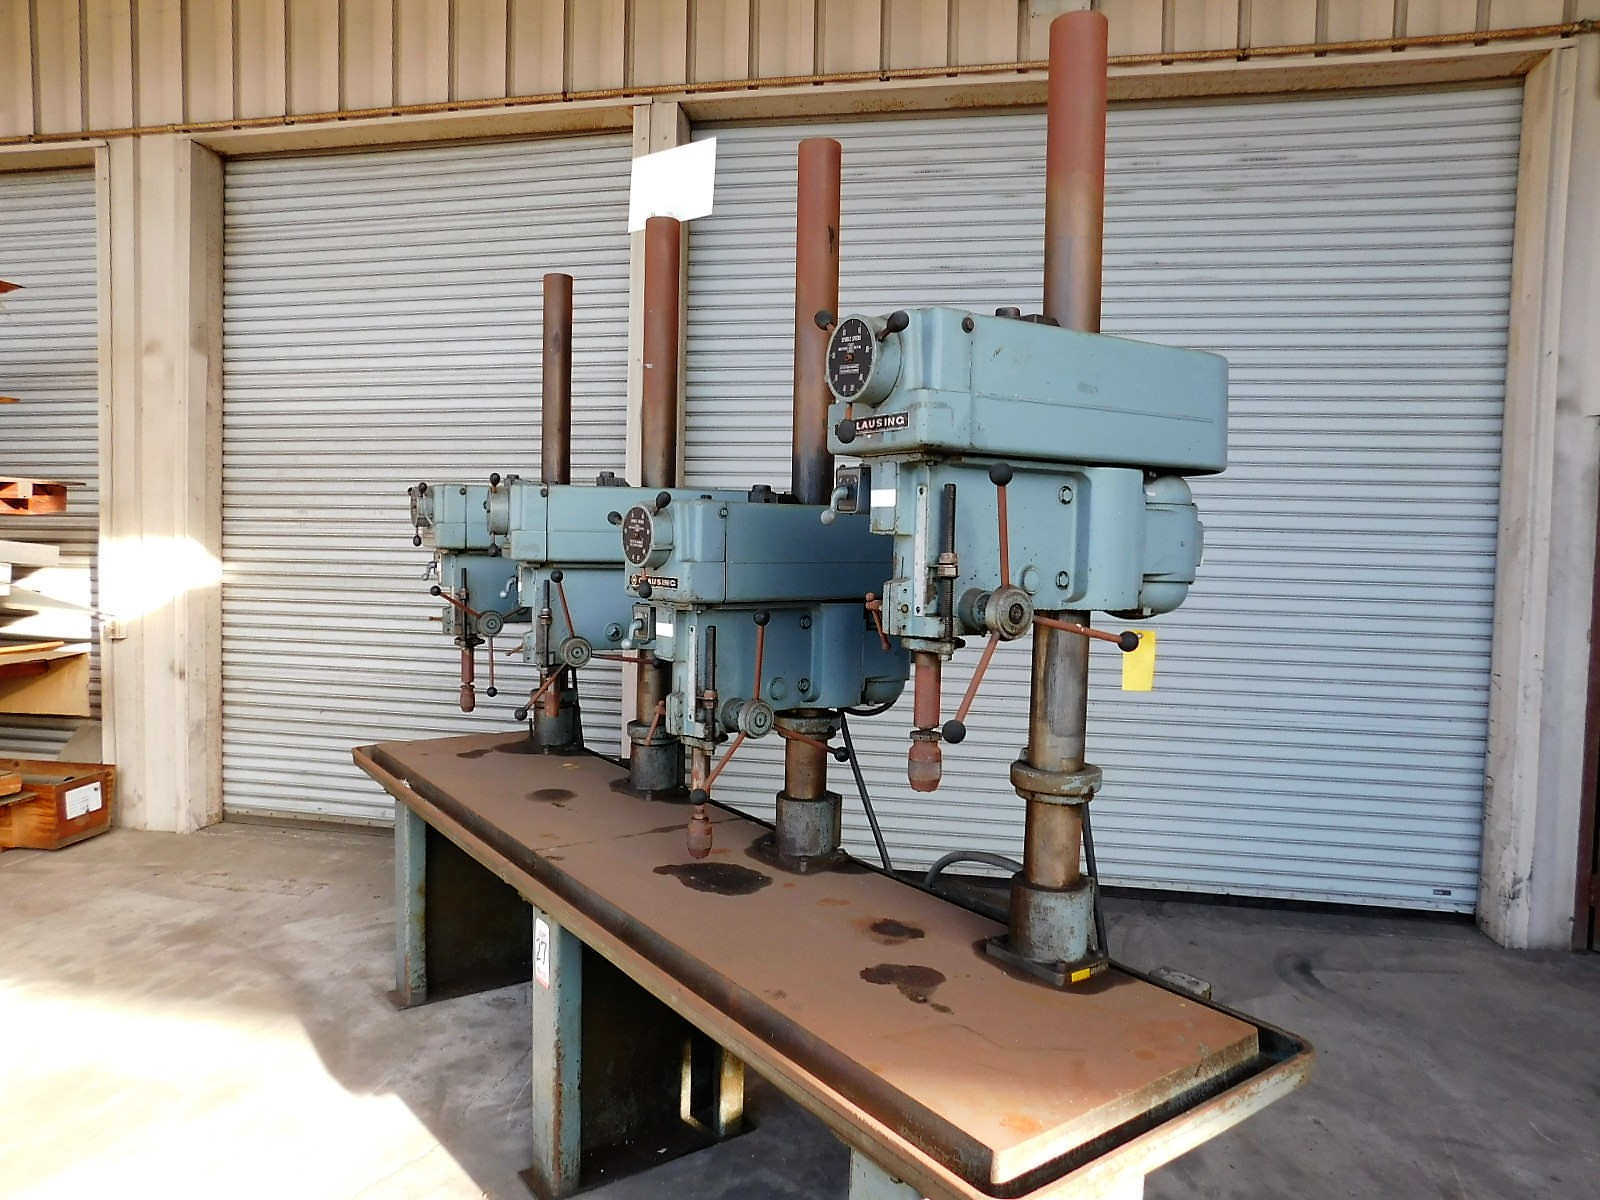 """Lot 27 - CLAUSING 4-HEAD DRILL PRESS BENCH, W/ (4) MODEL 2286 20"""" VARIABLE SPEED DRILL PRESSES, WORKTOP"""